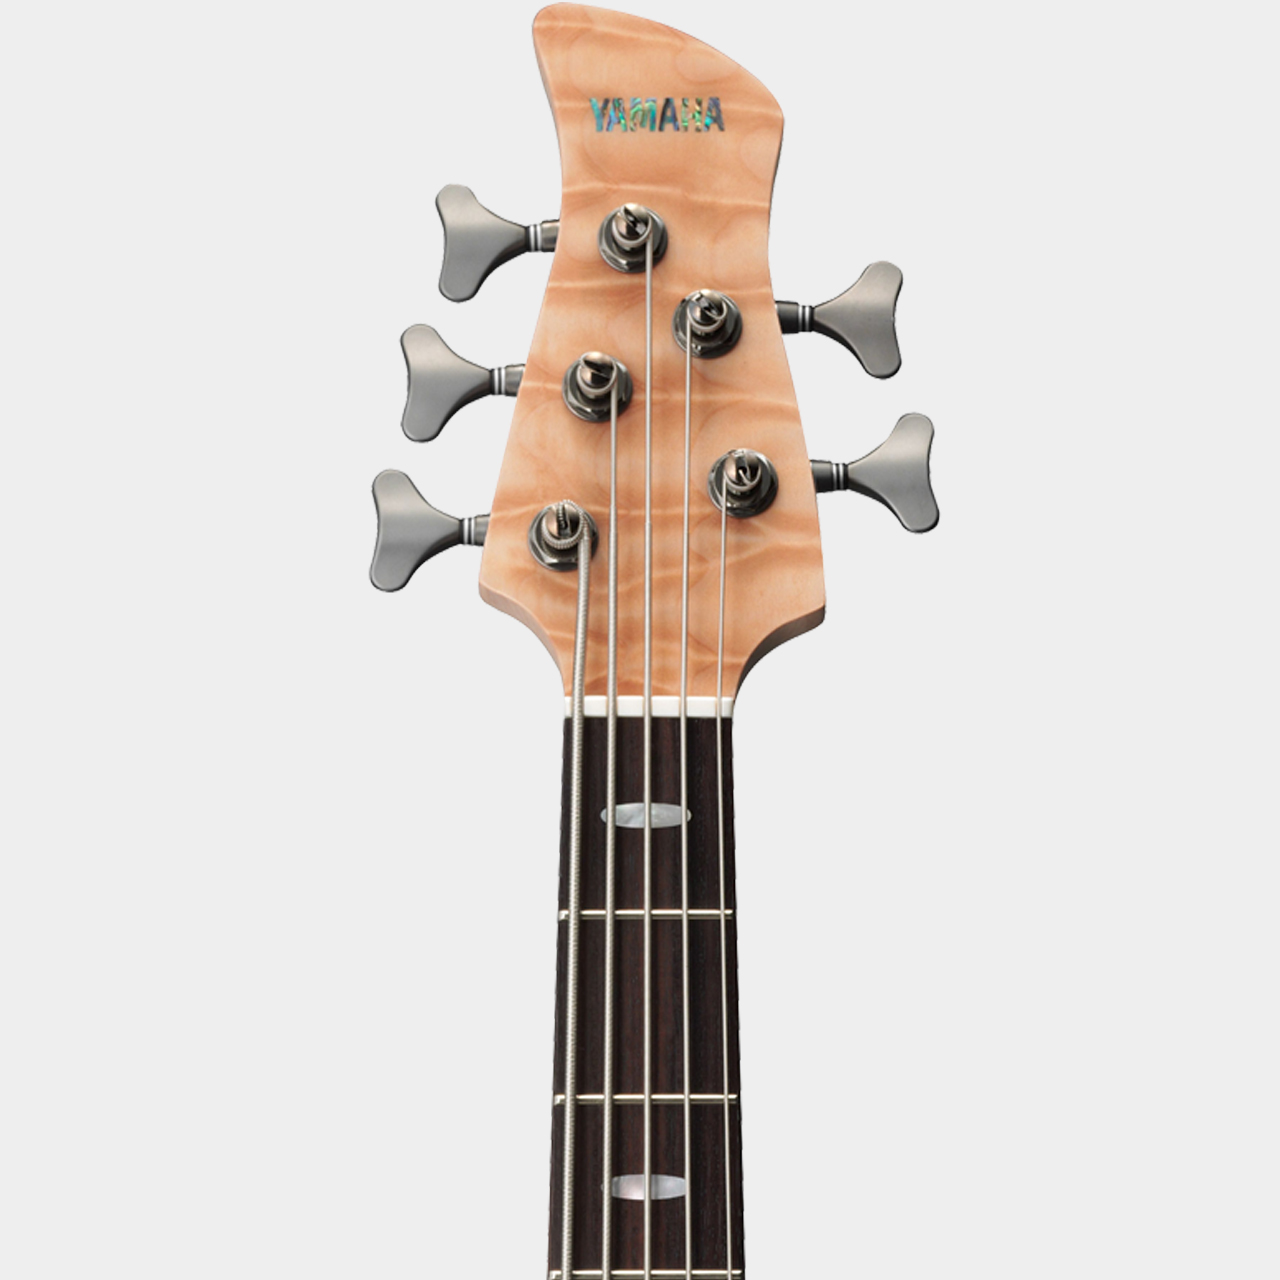 YAMAH TRB 1005 J Natural Headstock Detail